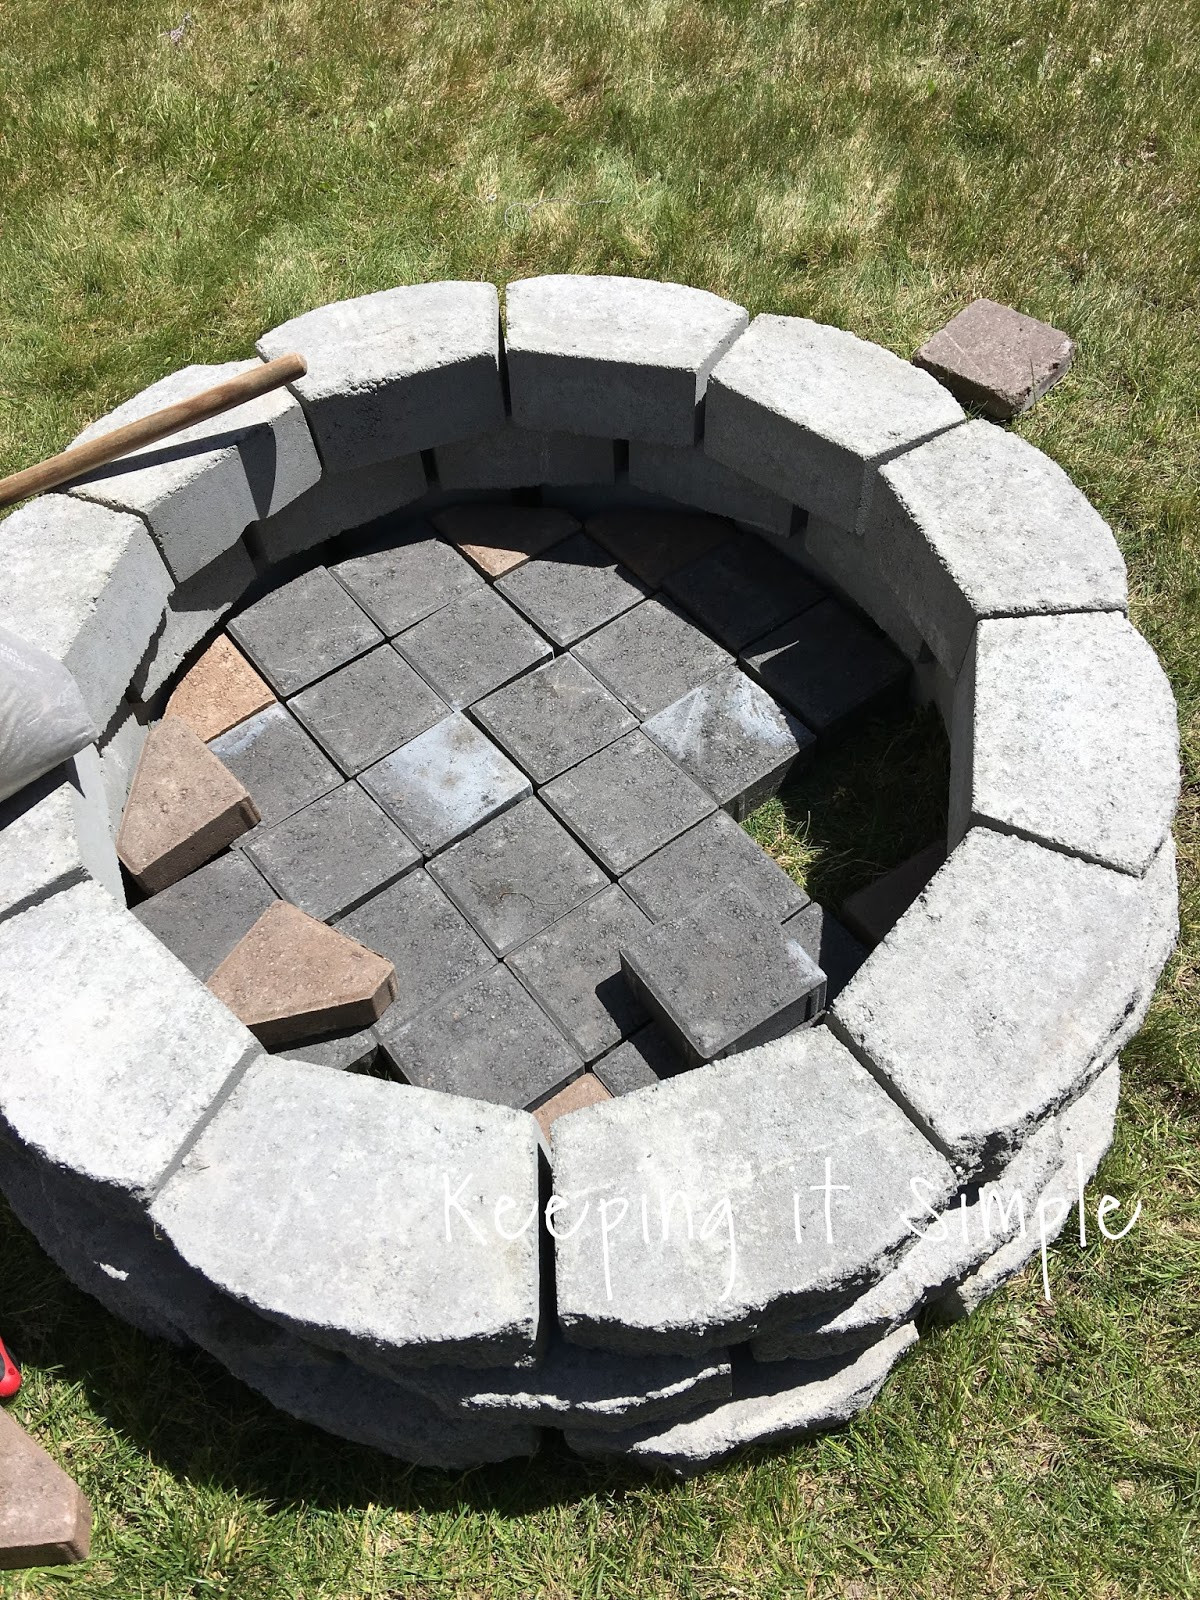 Best ideas about DIY Small Fire Pit . Save or Pin How to Build a DIY Fire Pit for ly $60 • Keeping it Now.